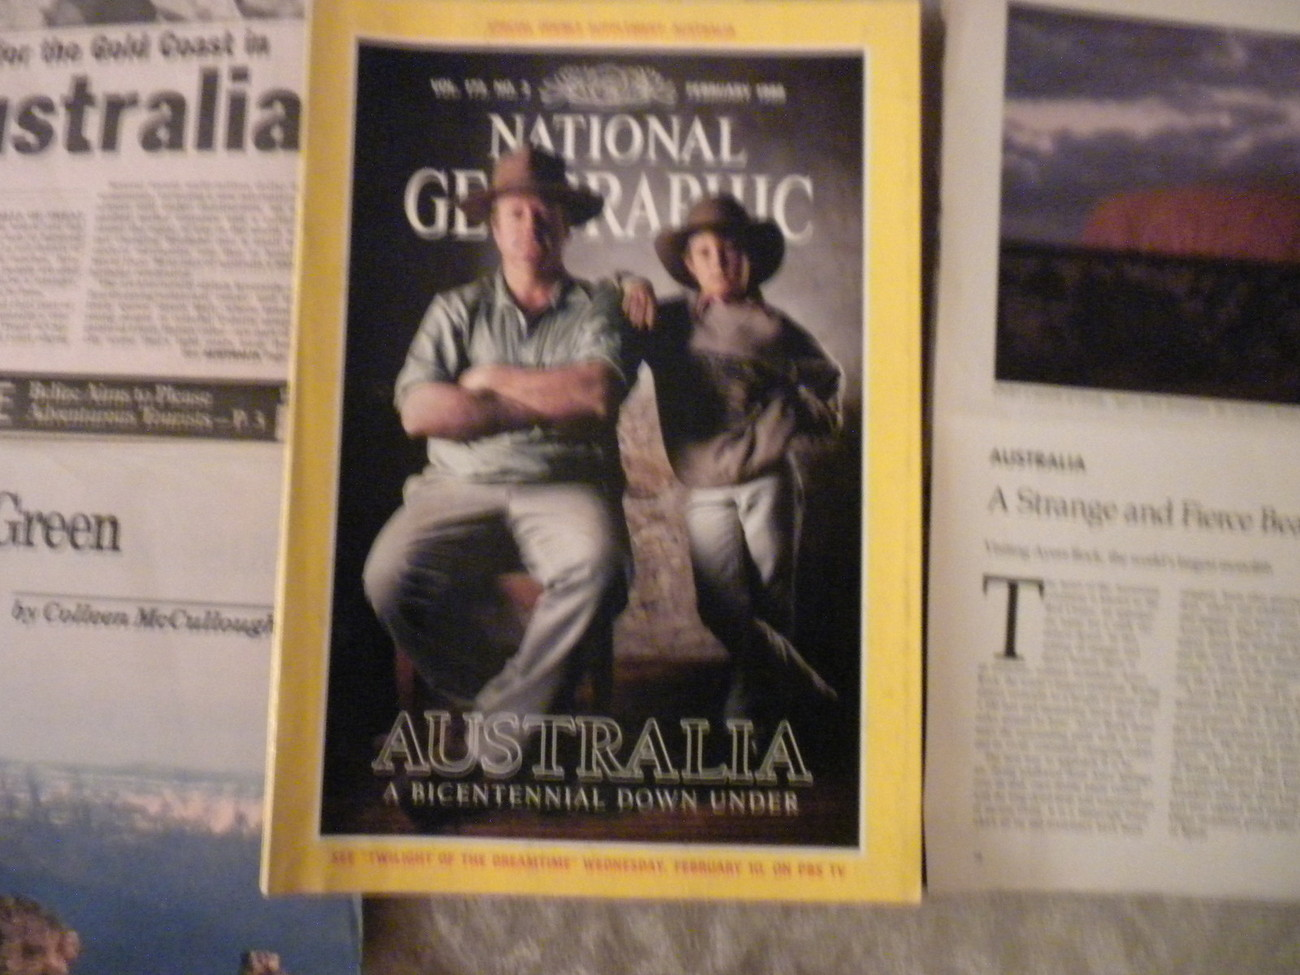 Australia Bicentennial the land, Past, Present National Geographic & extras1988